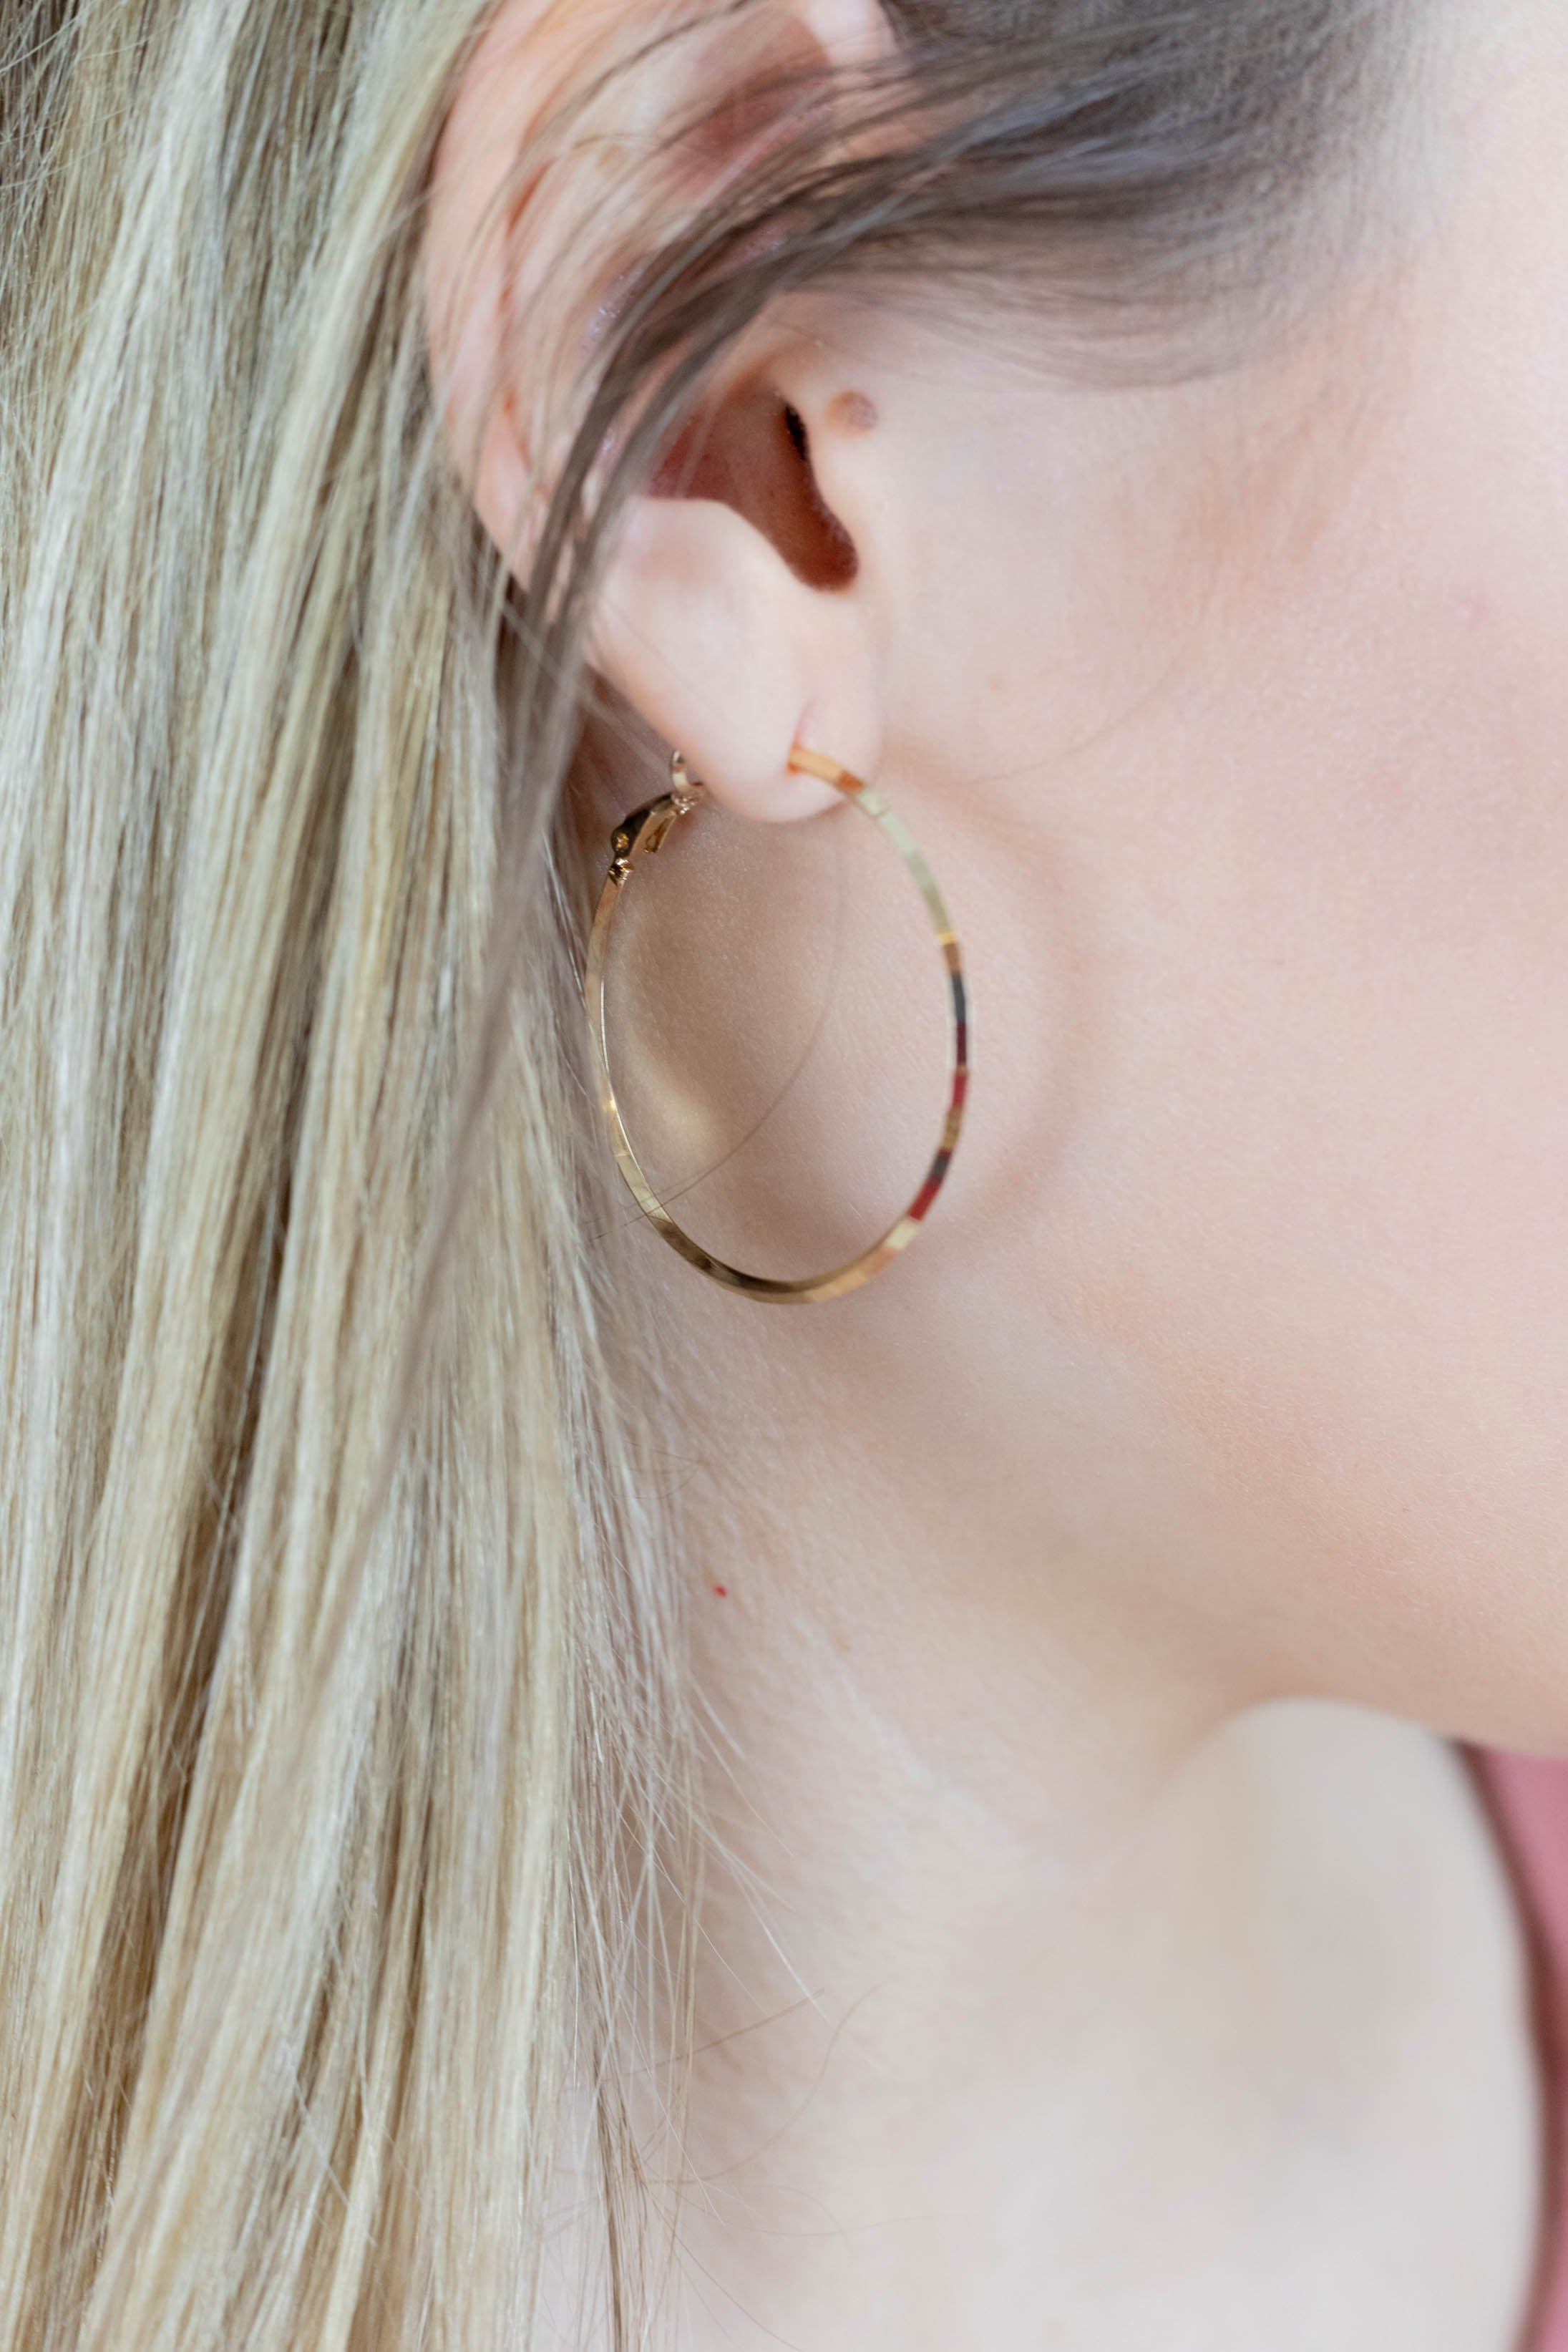 Perfectly Classic Earrings